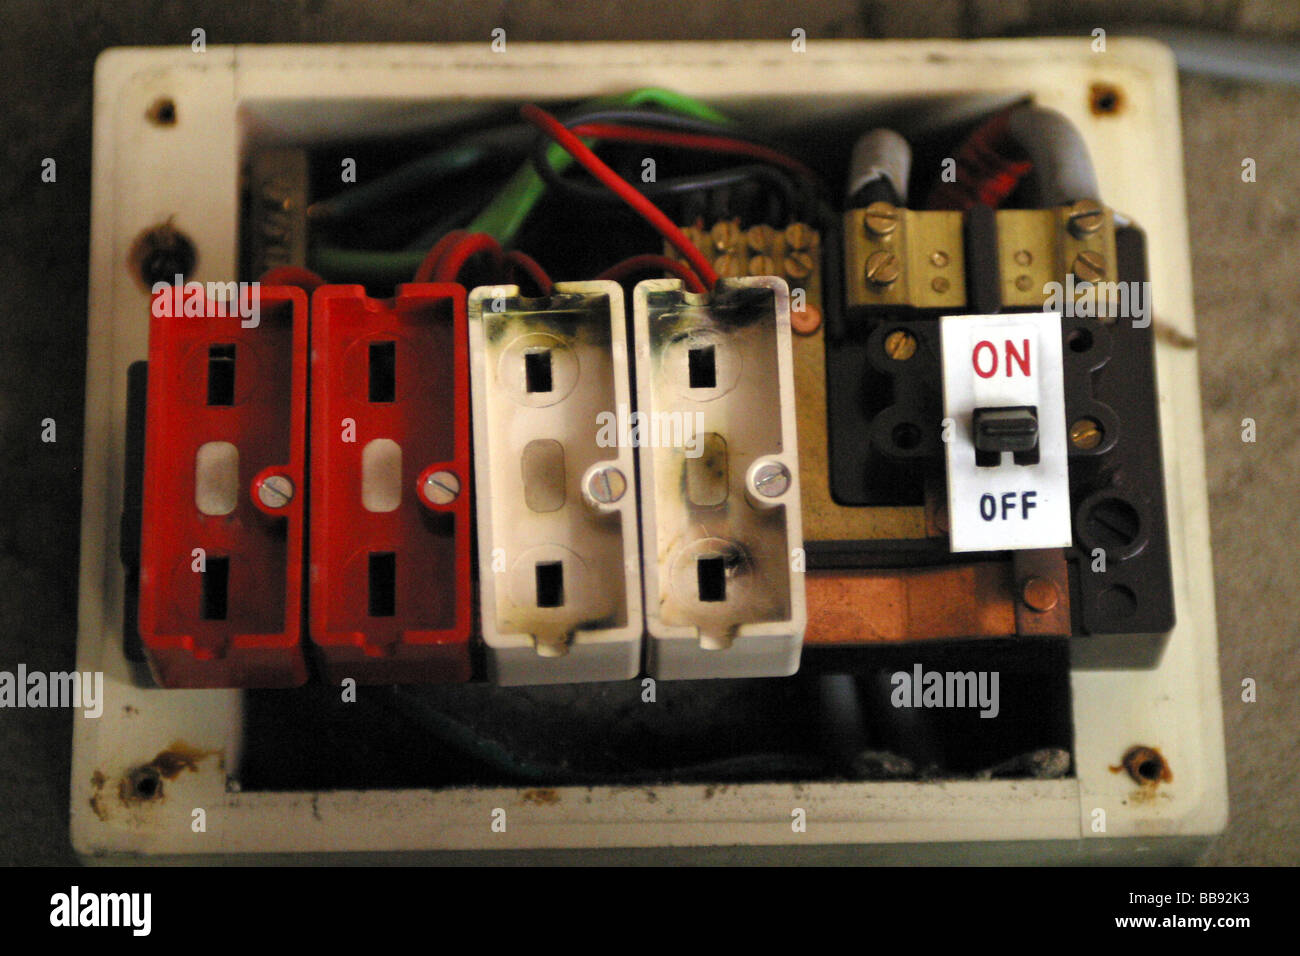 hight resolution of c8 alamy com comp bb92k3 old style wire fuse box w fuse box wiring to accessories plug in fuse box